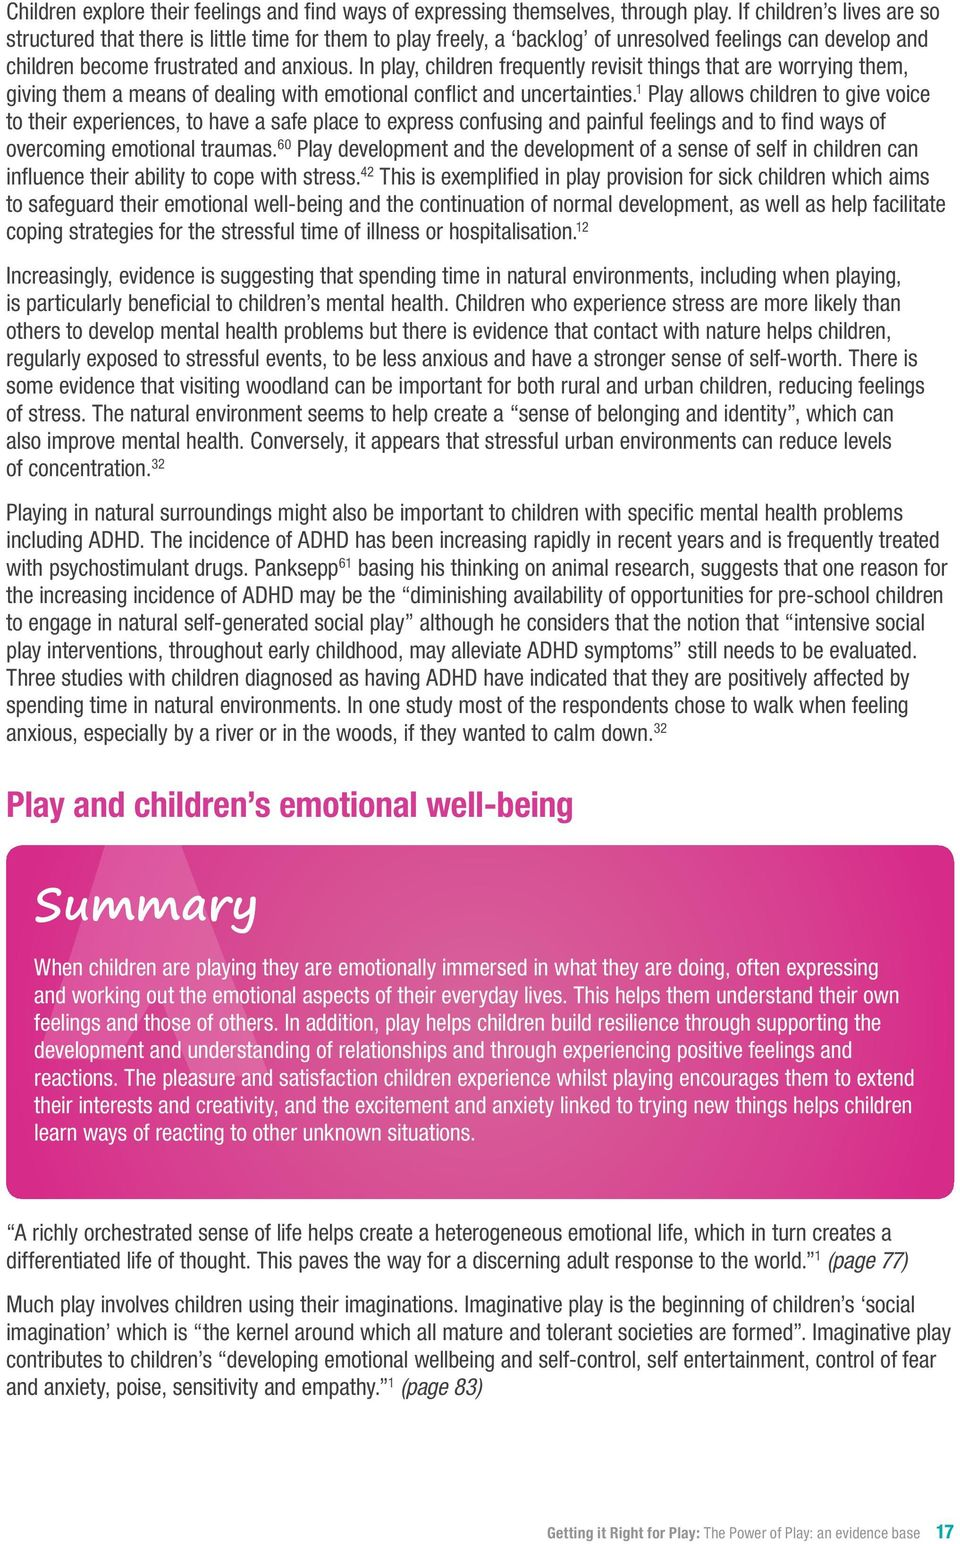 In play, children frequently revisit things that are worrying them, giving them a means of dealing with emotional conflict and uncertainties.